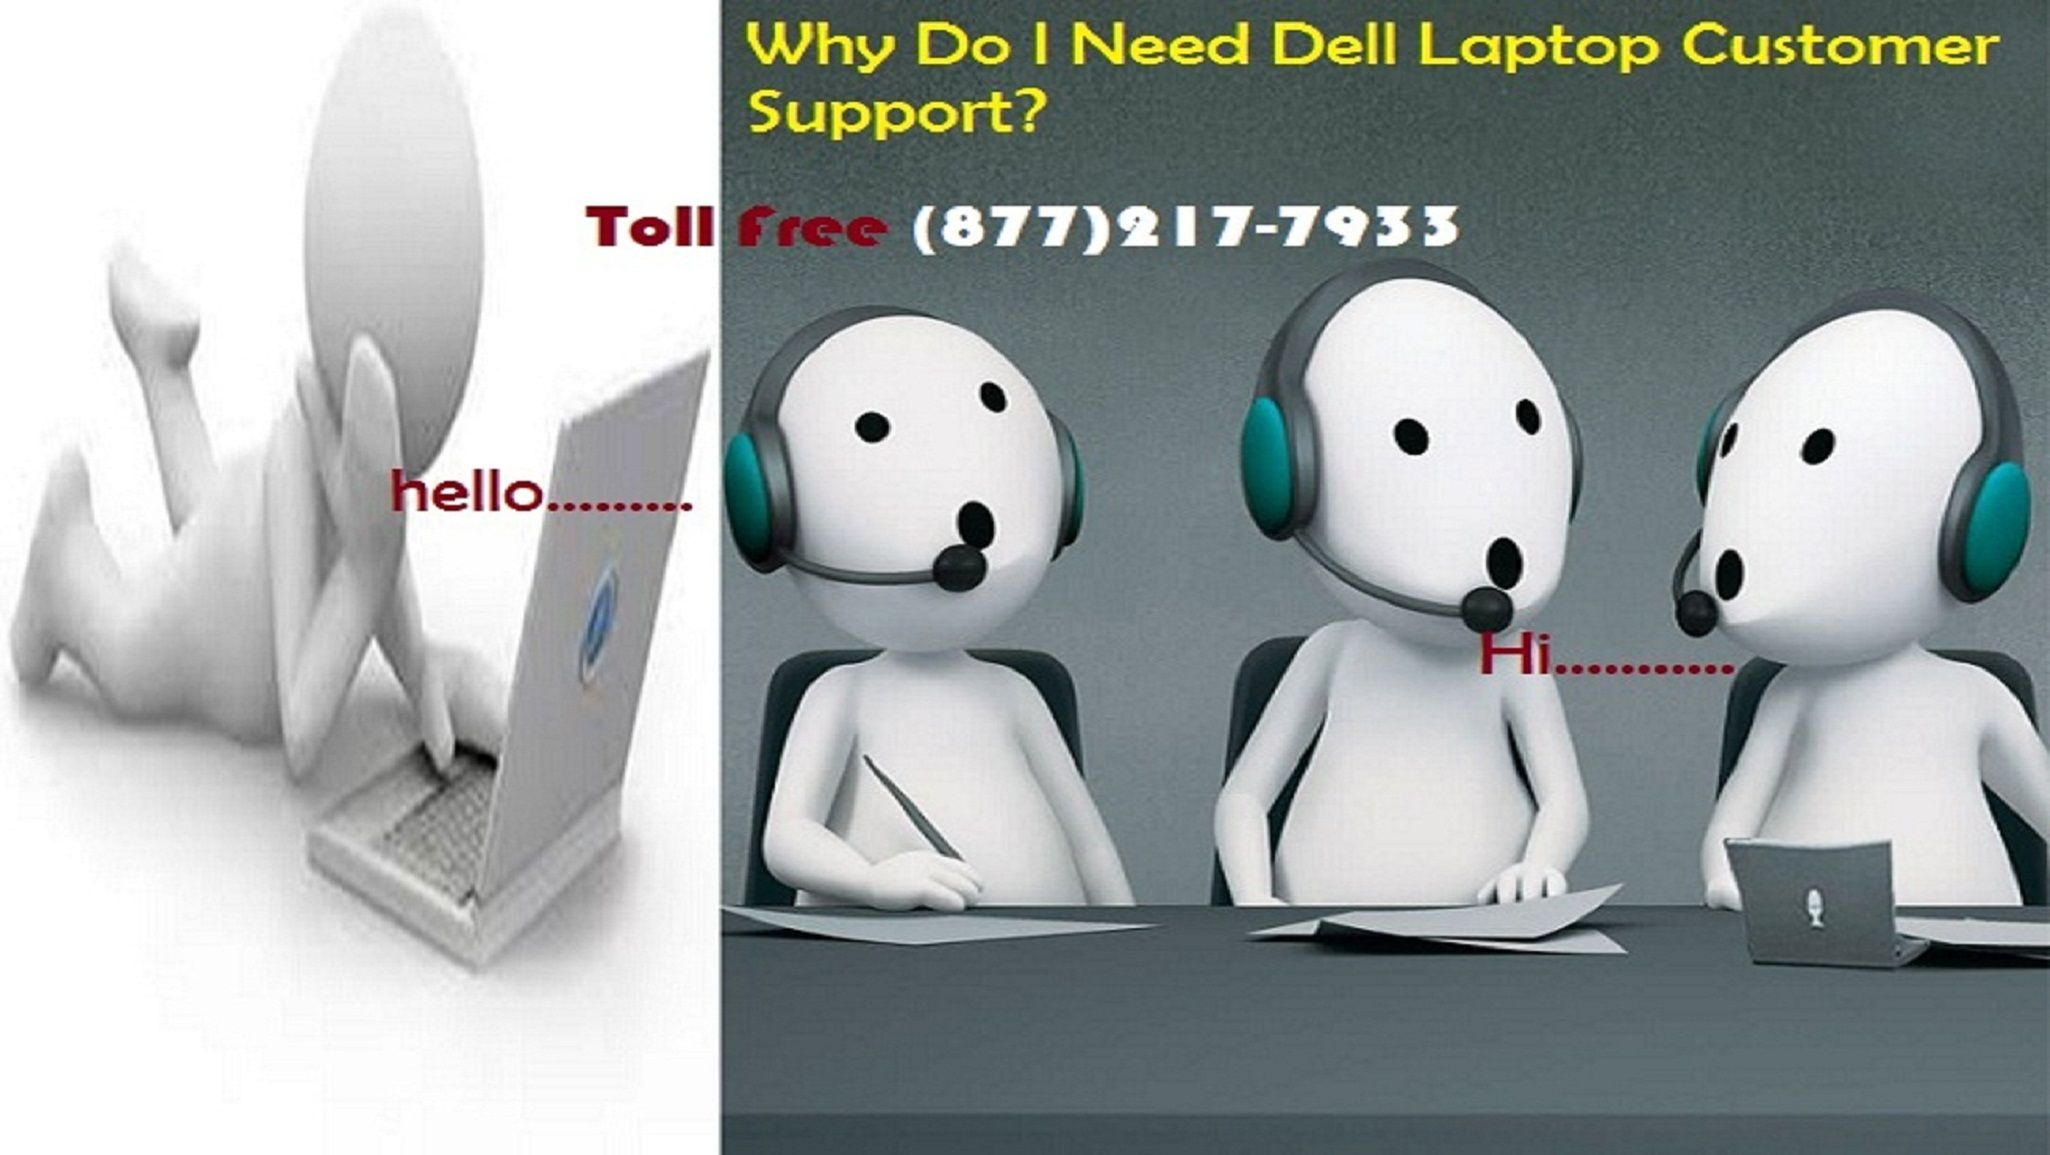 1-877-217-7933 Why We Need Dell Product for us Dell technical support phone number opens round-the-clock to help you with quick results. We are best and most preferred online Dell tech support service provider for Dell computers, printers and tablets facing software problem, internet issues, wireless connection issues and other errors.